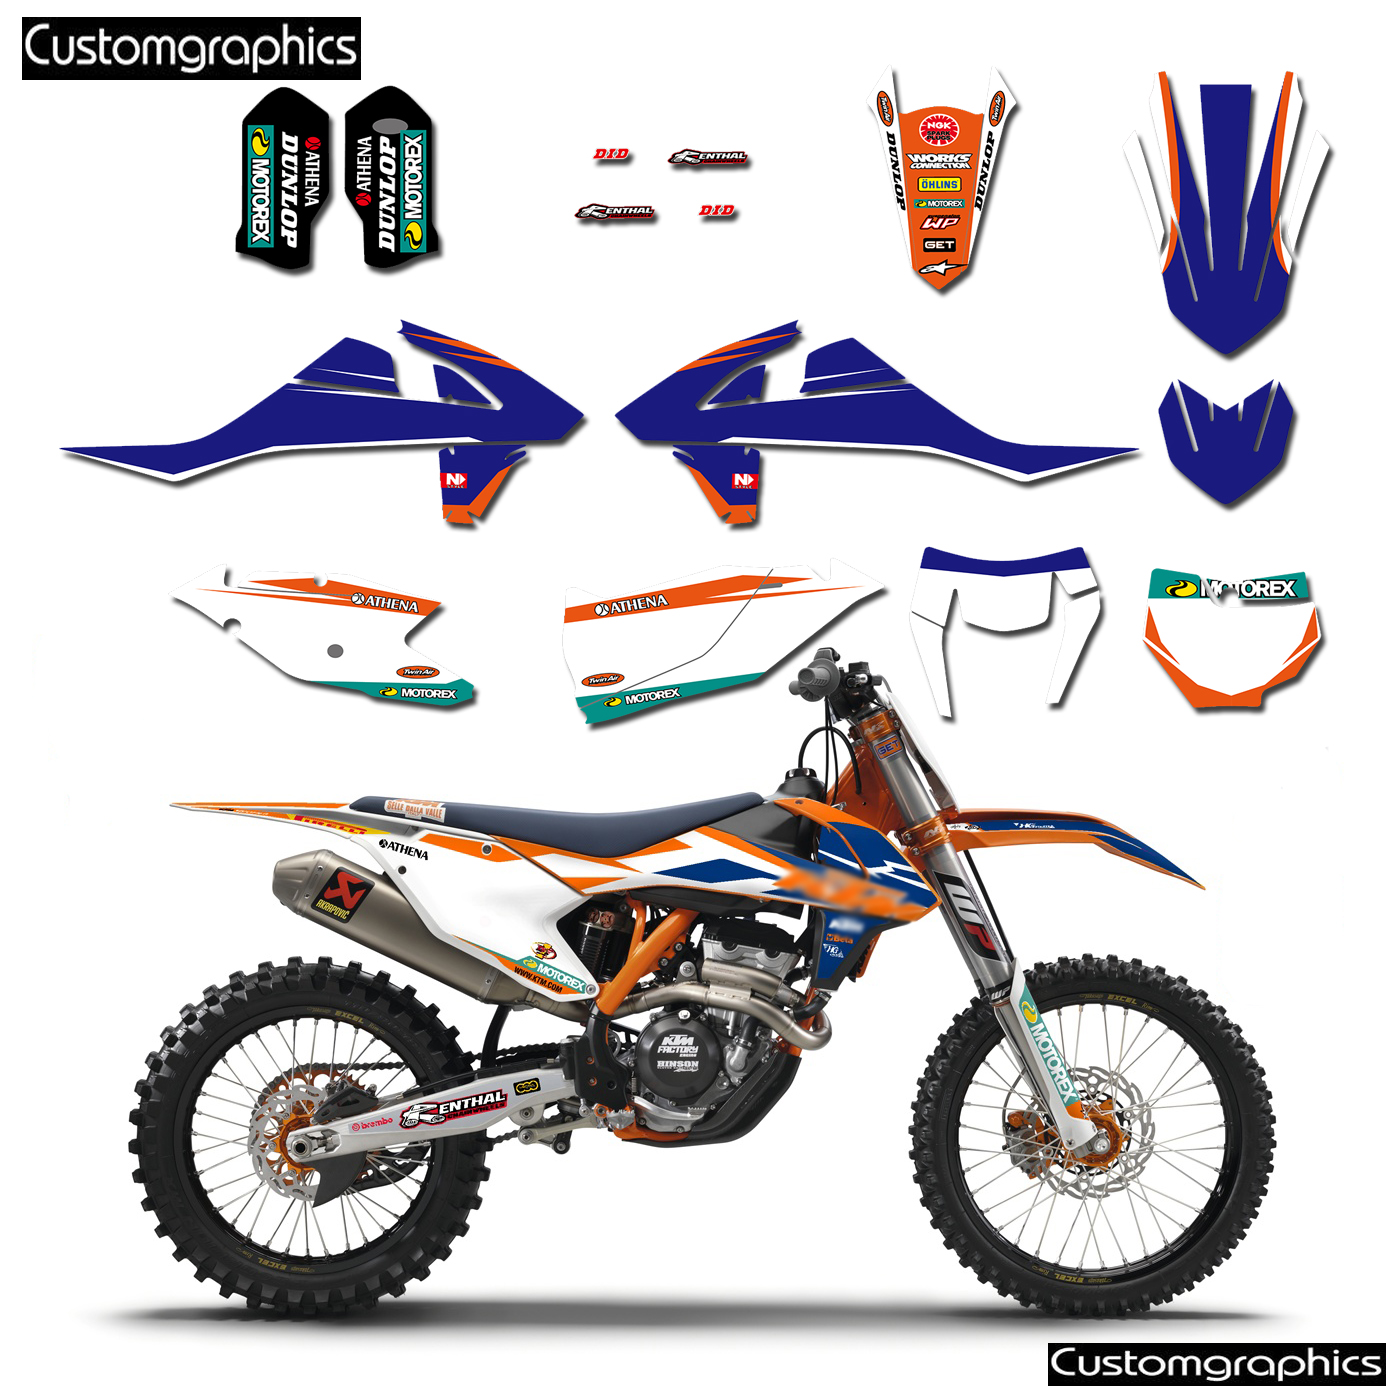 Custom Graphics Sticker & Decals Kit Number Plate Backgrounds For KTM 50 65 85 125 200 250 300 350 450 500 EXC SX SXF XCW XC Custom Graphics Sticker & Decals Kit Number Plate Backgrounds For KTM 50 65 85 125 200 250 300 350 450 500 EXC SX SXF XCW XC